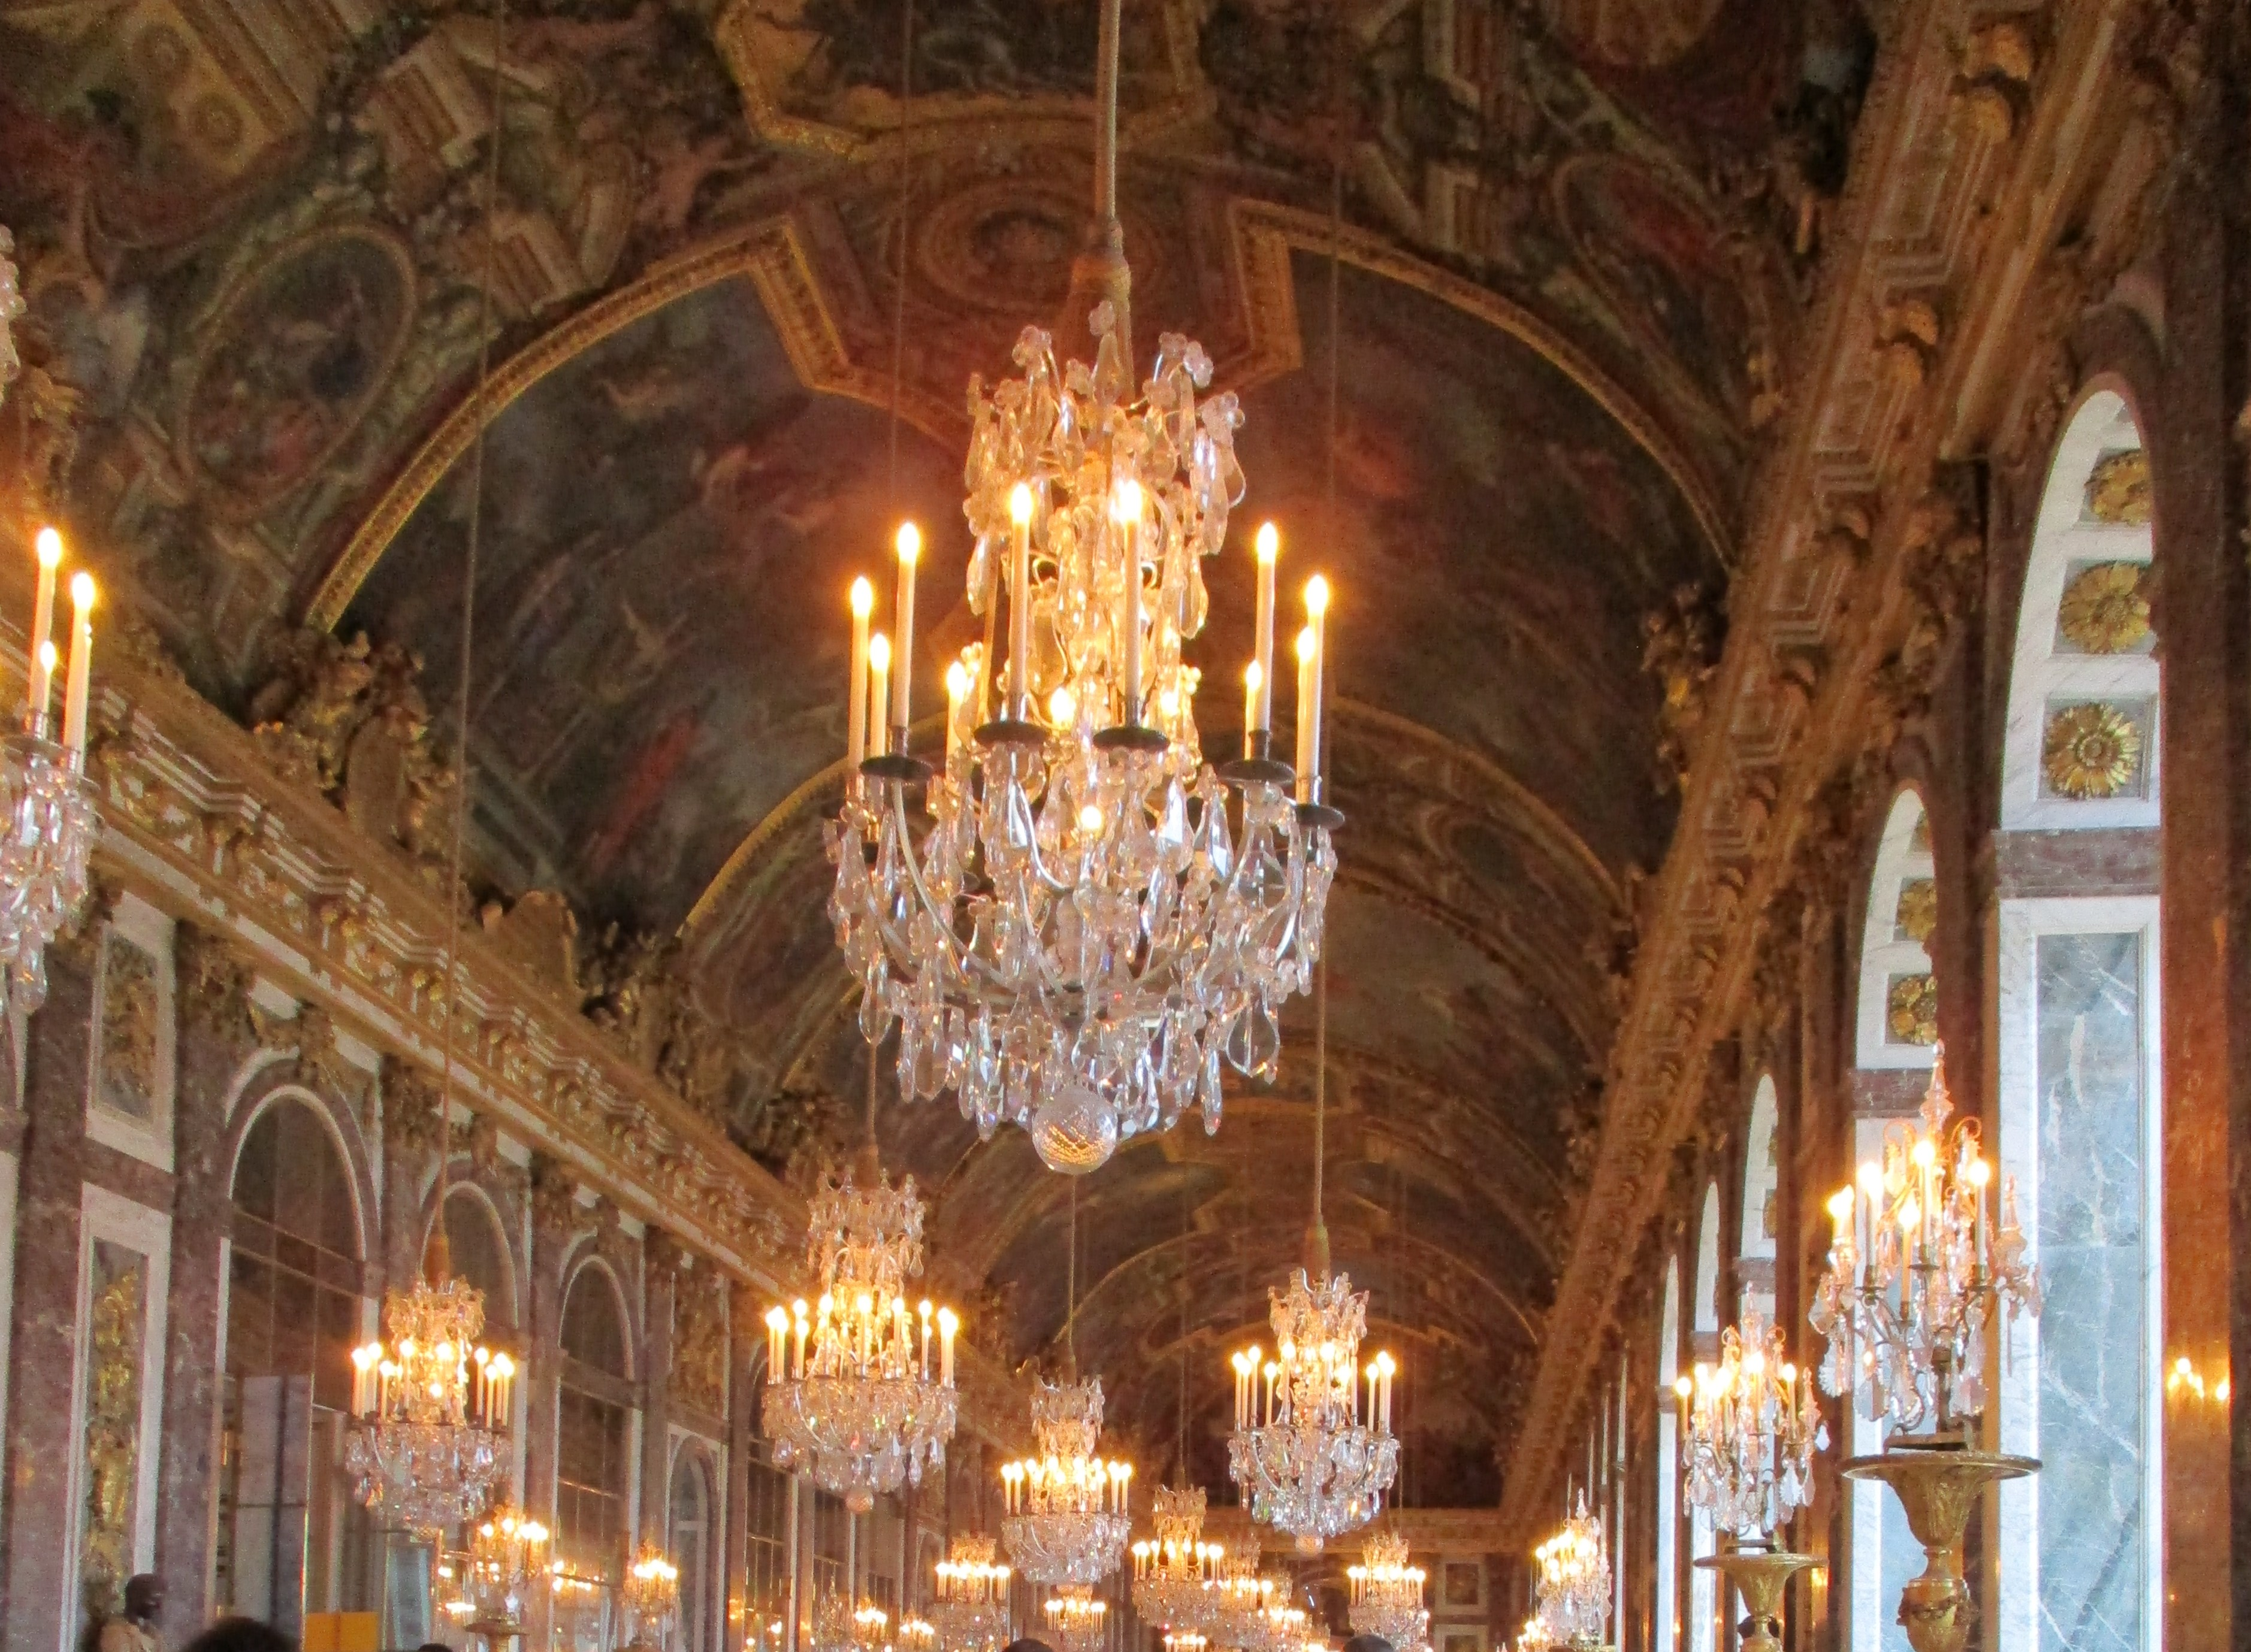 Hall of Mirrors, of Versailles